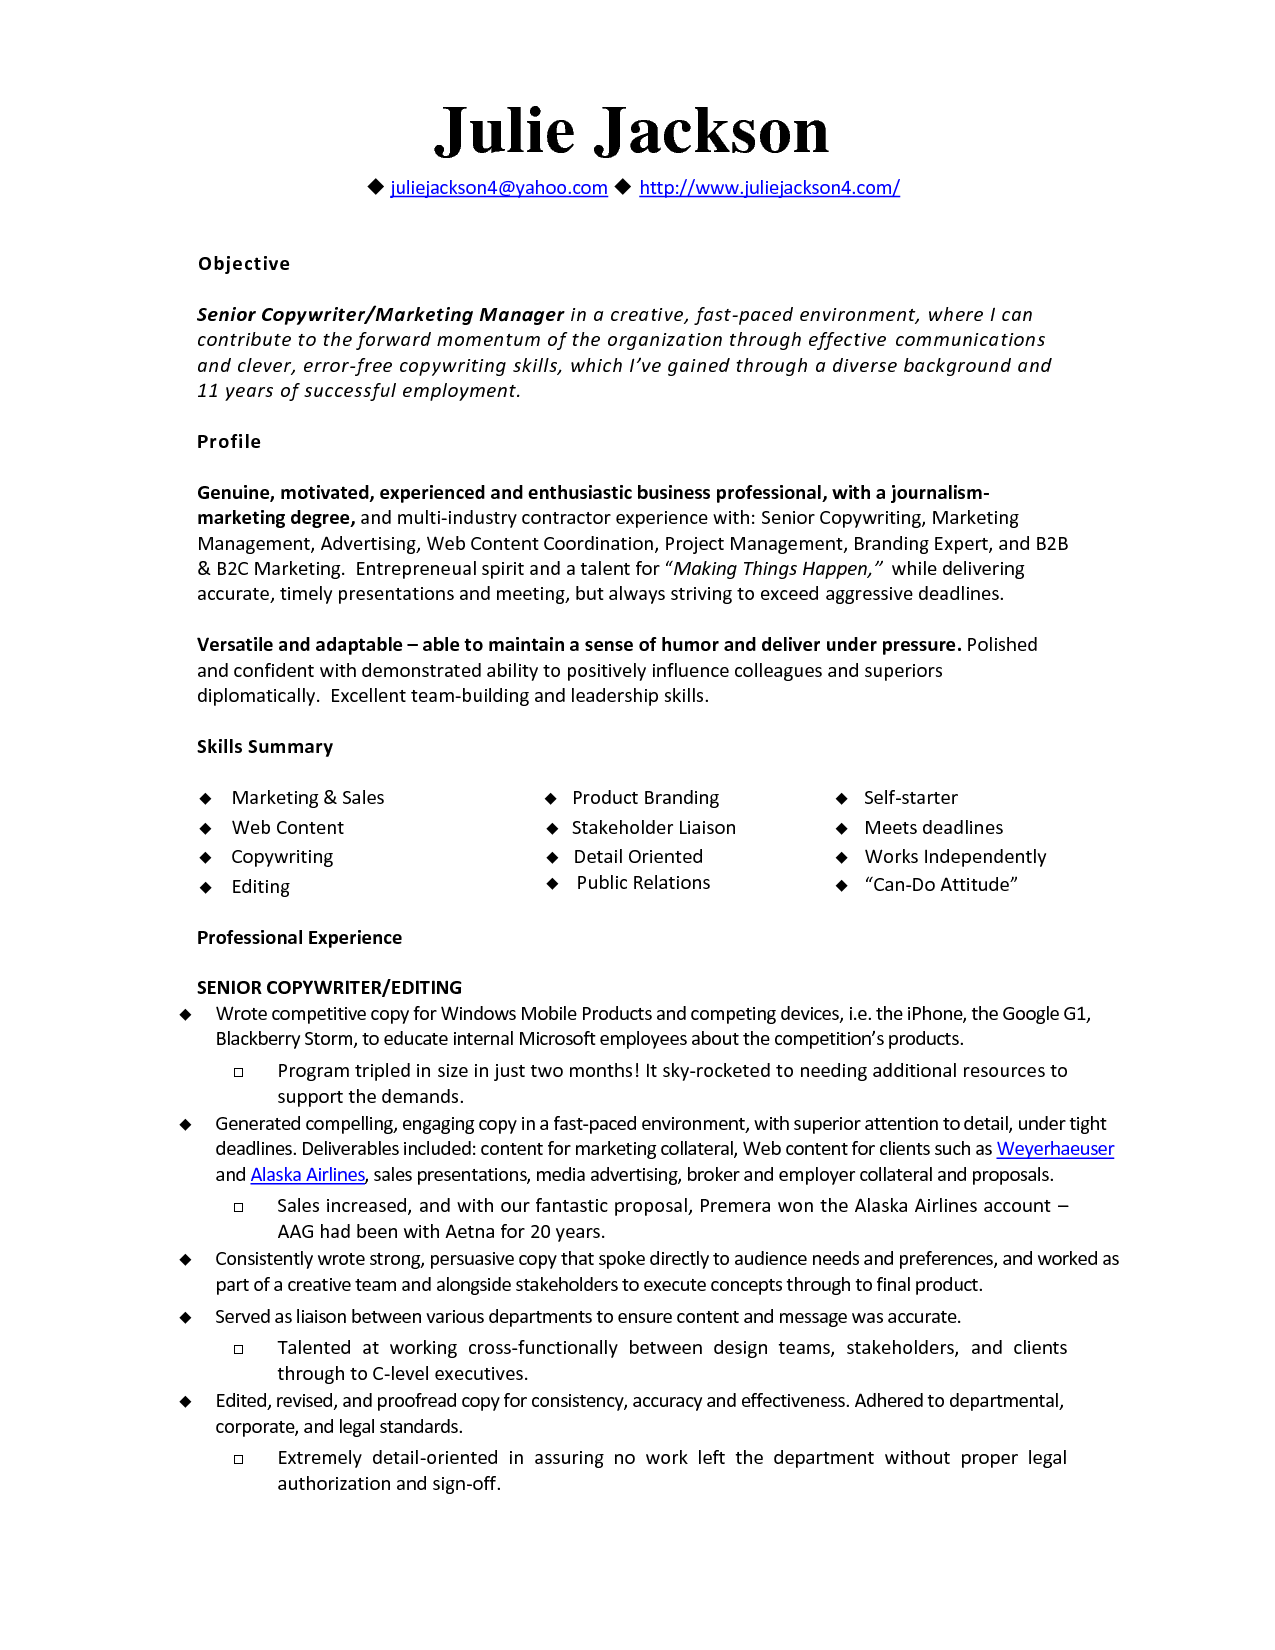 Financial Analyst Resume Sample Inspirational Junior Financial Analyst Resume Samples In 2020 Sales Resume Examples Medical Sales Resume Pharmaceutical Sales Resume